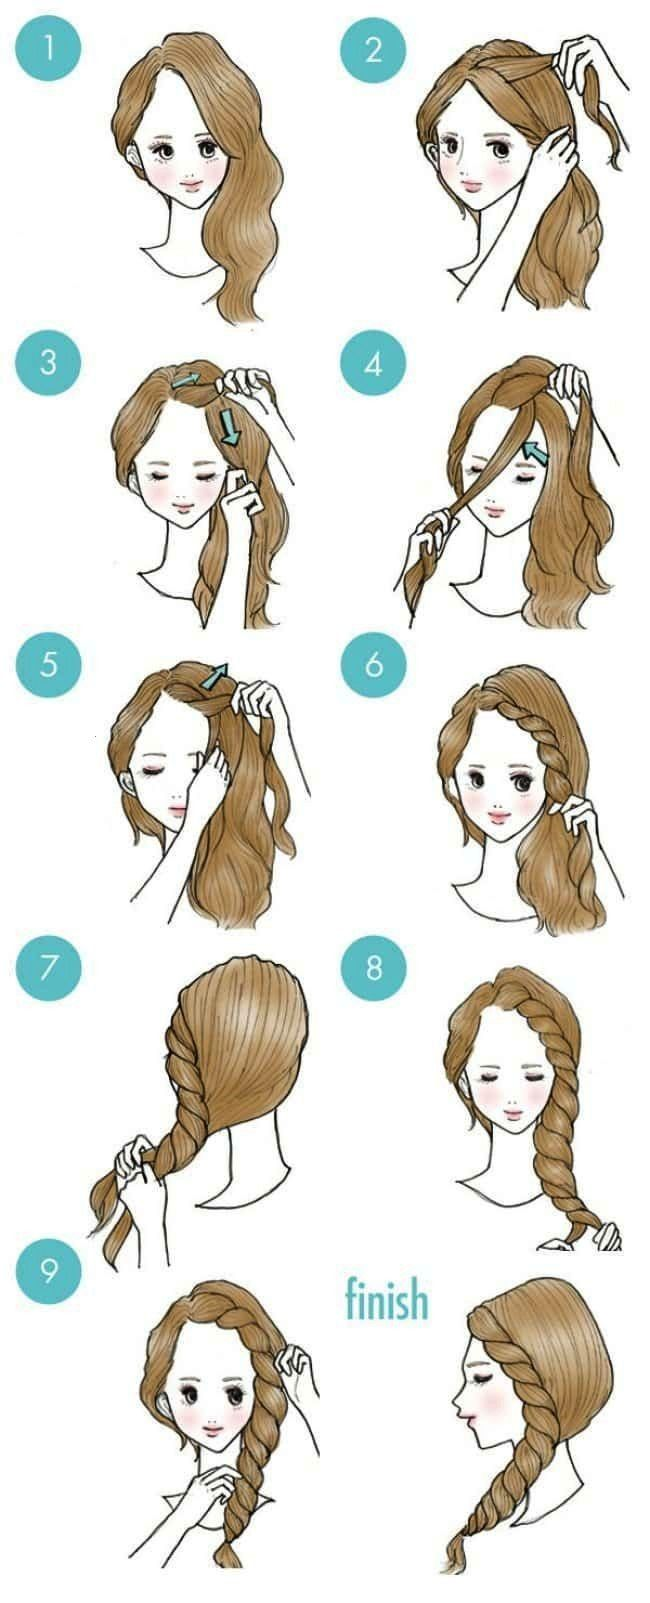 cute hairstyles that are extremely easy to do - hairstyle models -  20 cute hairstyles that are ext